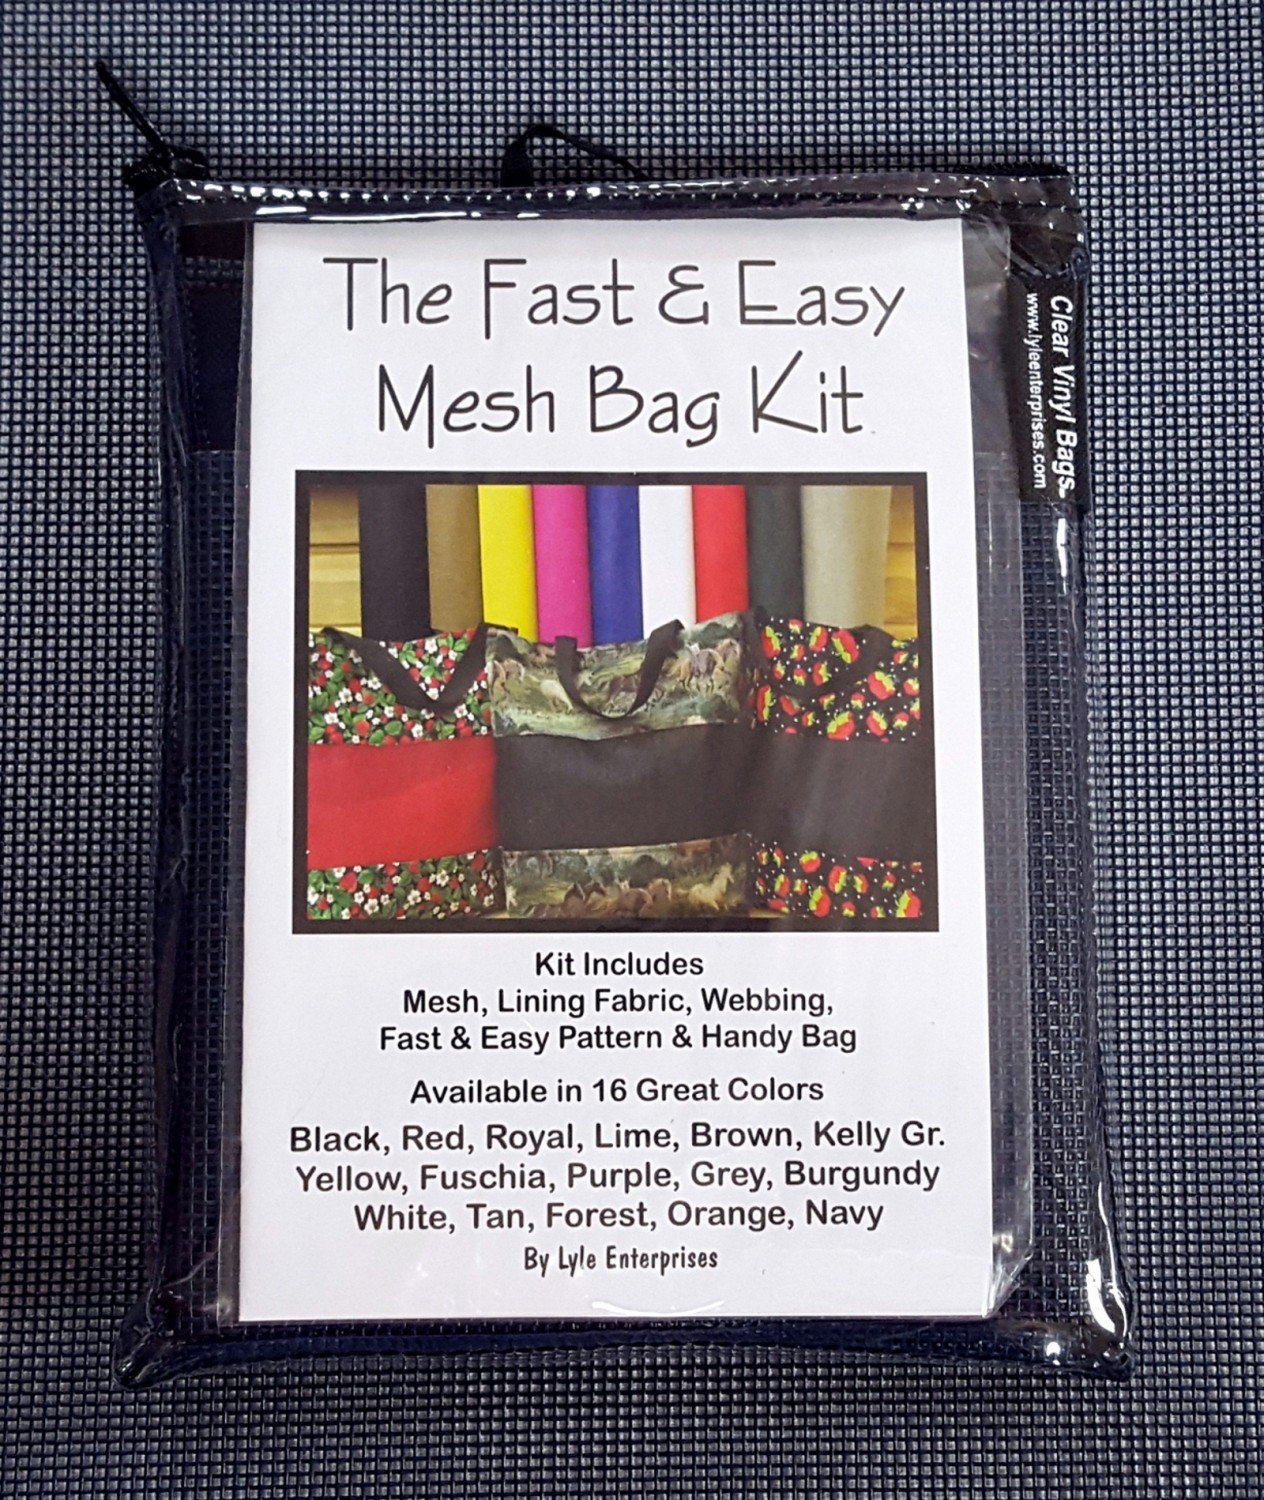 Navy Mesh Bag Kit - MBK-13 - MAY BE RESTOCKED UPON REQUEST